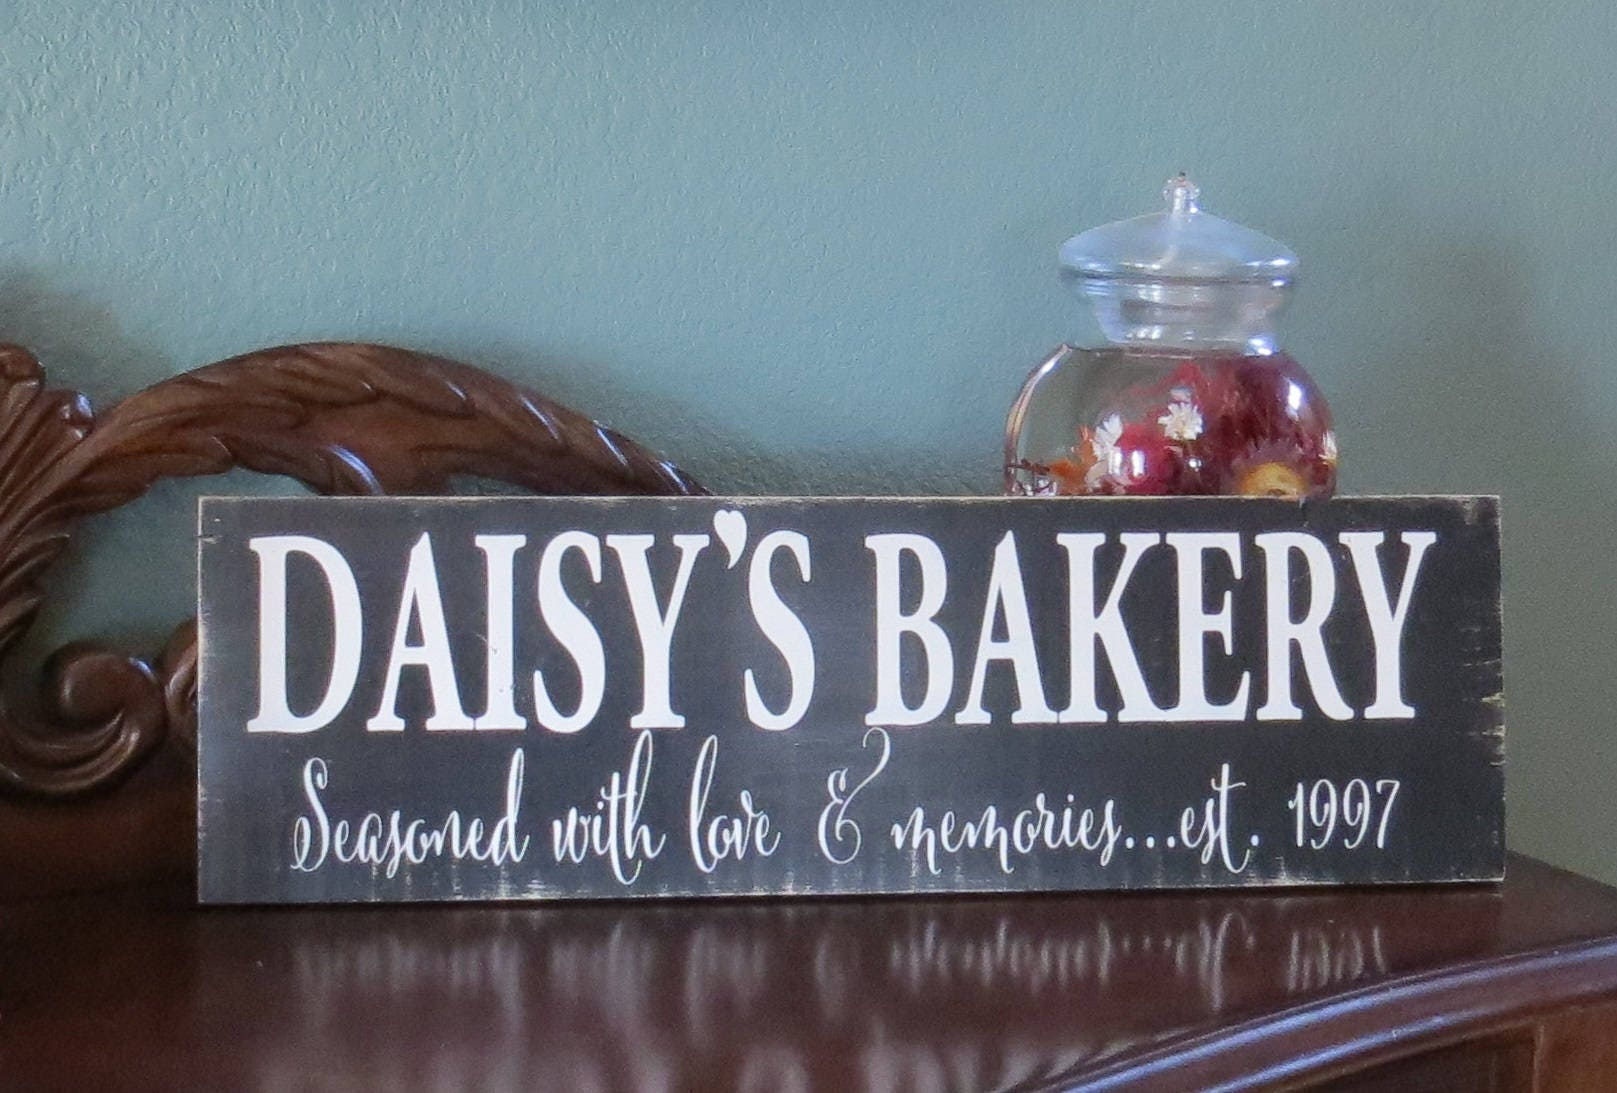 Personalized BakeryPersonalize with your own special | Etsy